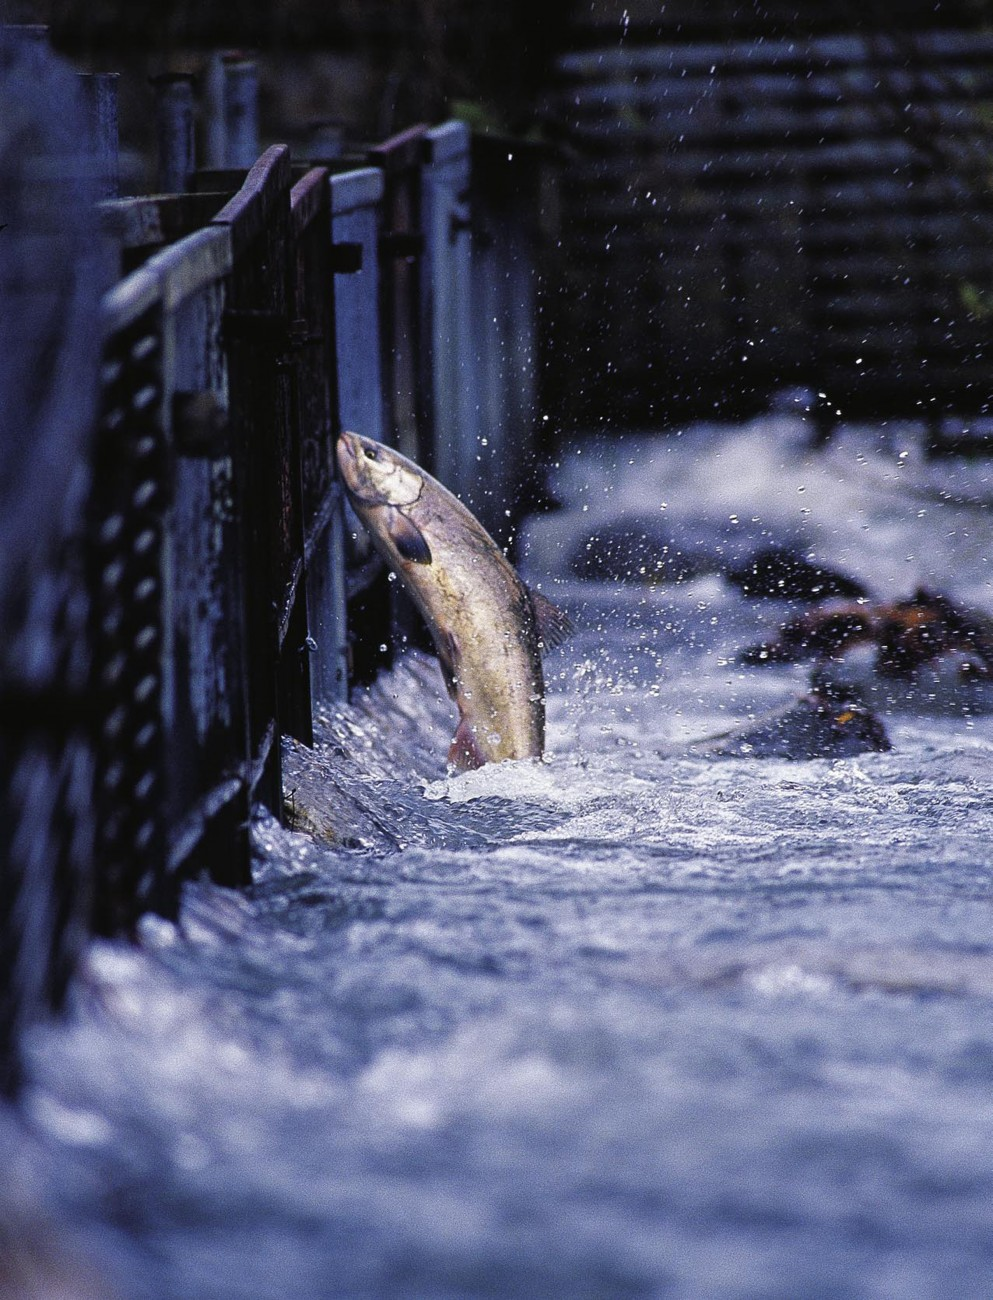 A leaping salmon is one of nature's most enduring icons. At a fish trap on the Glenariffe Stream, a tributary of the upper Rakaia, migrating salmon are weighed and measured to enable scientists to assess the size and age structure of the quinnat population. Once the data have been collected, the fish are released to continue their upstream journey.